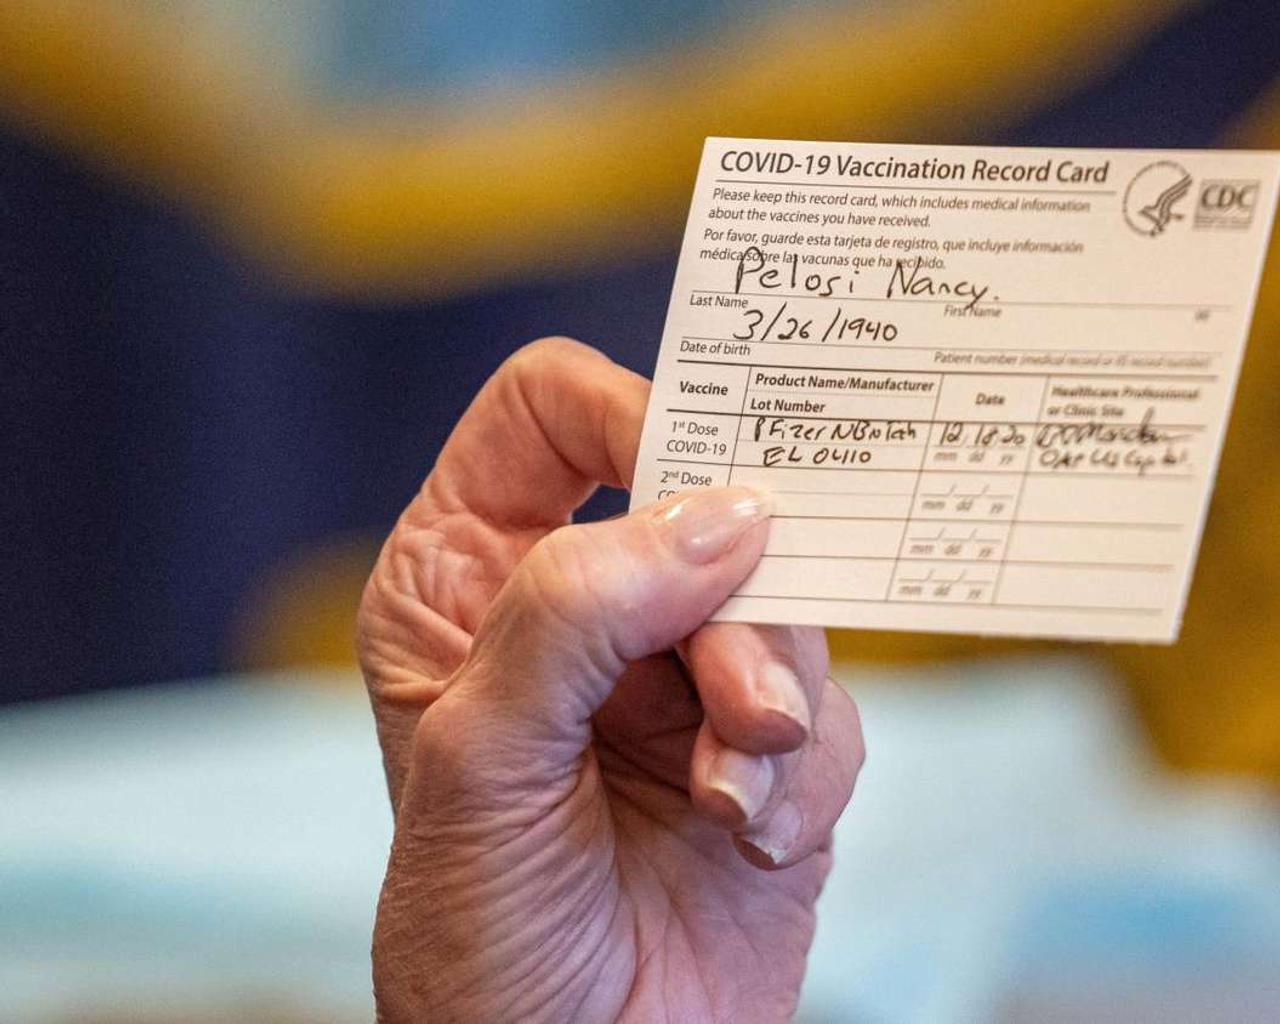 What You Should Know About COVID-19 Vaccination Passports